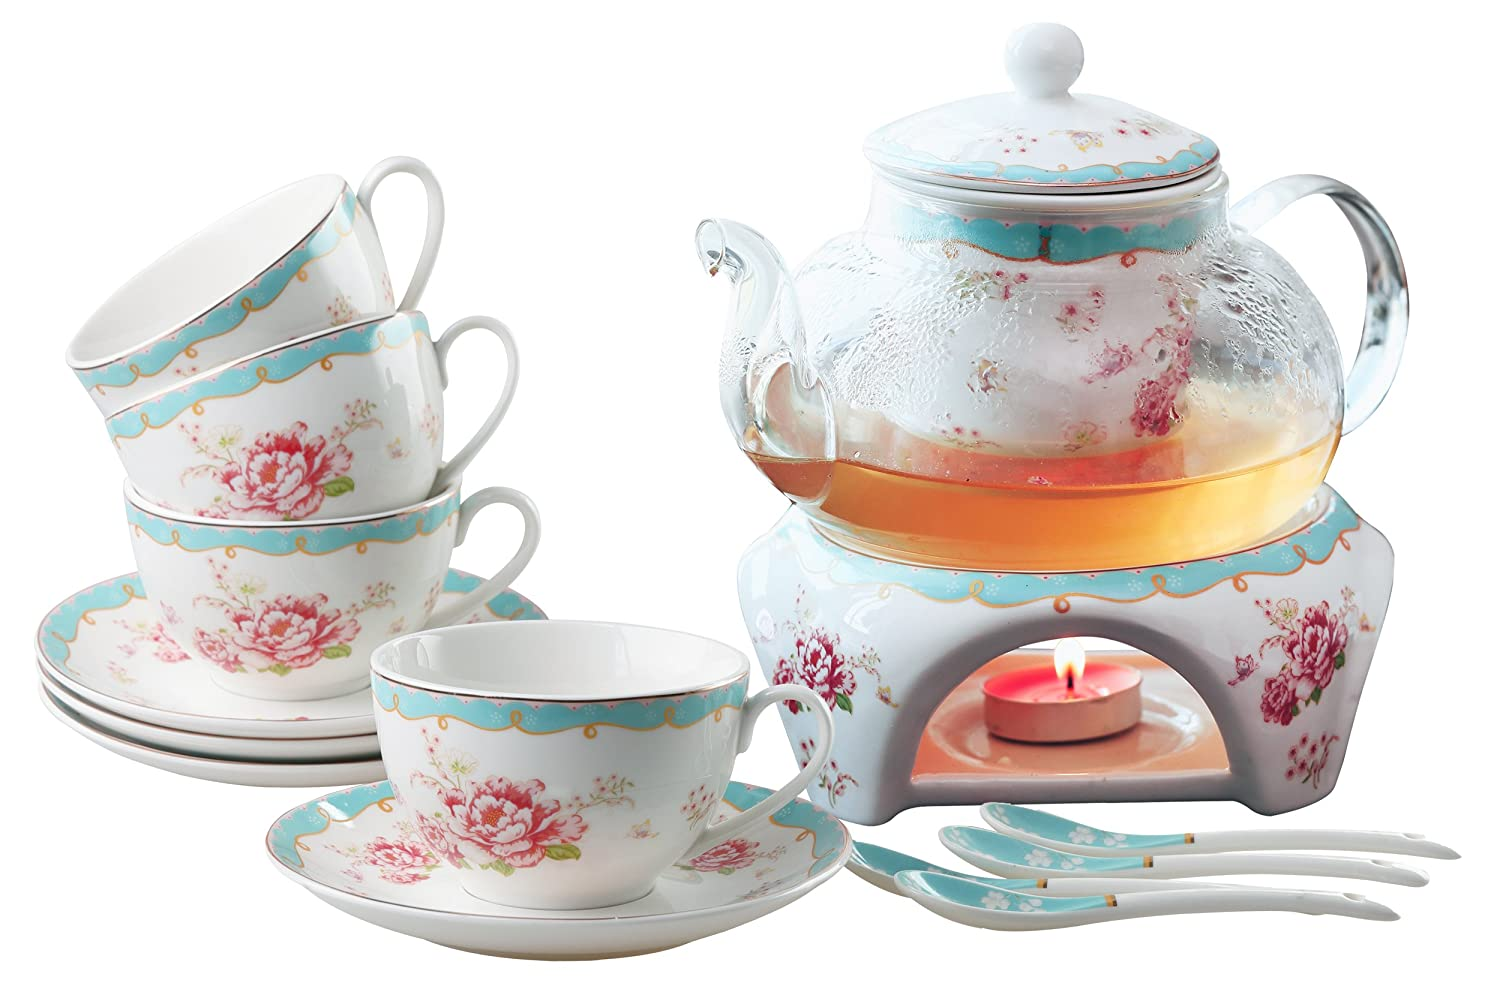 Jusalpha Fine China Vintage Rose Flower Series Coffee Cup-Teacup Saucer Spoon Set with Teapot Warmer & Filter, (Rose Glass pot 03)